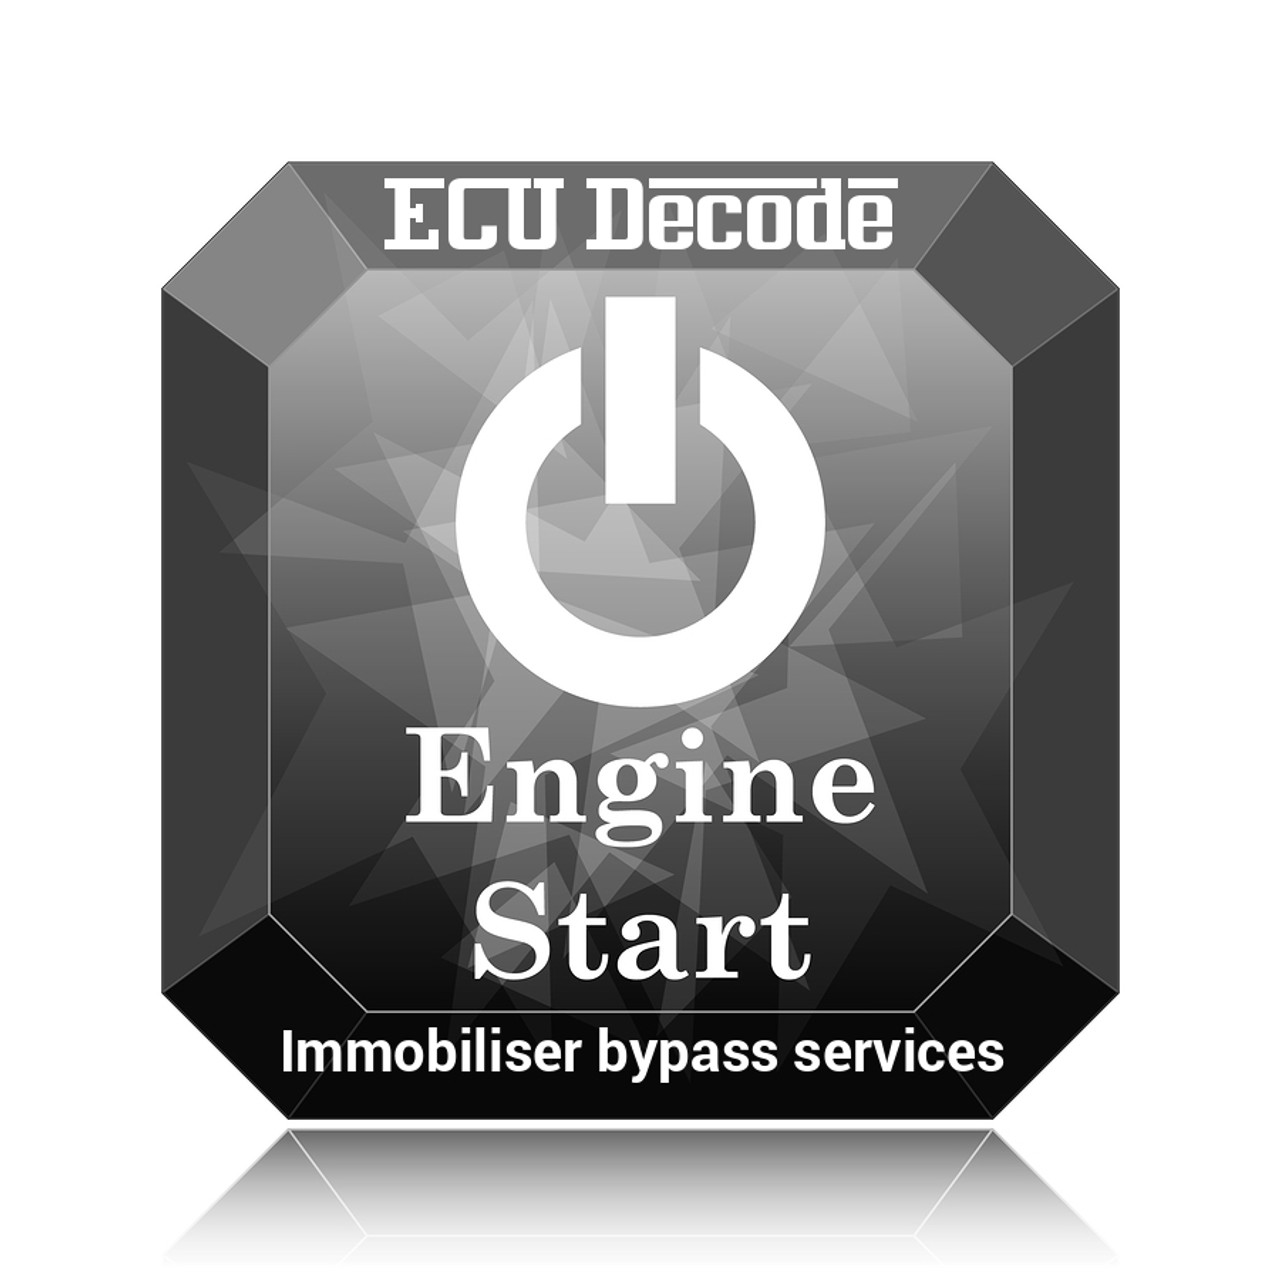 Renault Immobiliser Bypass Services - ECU Decode Limited